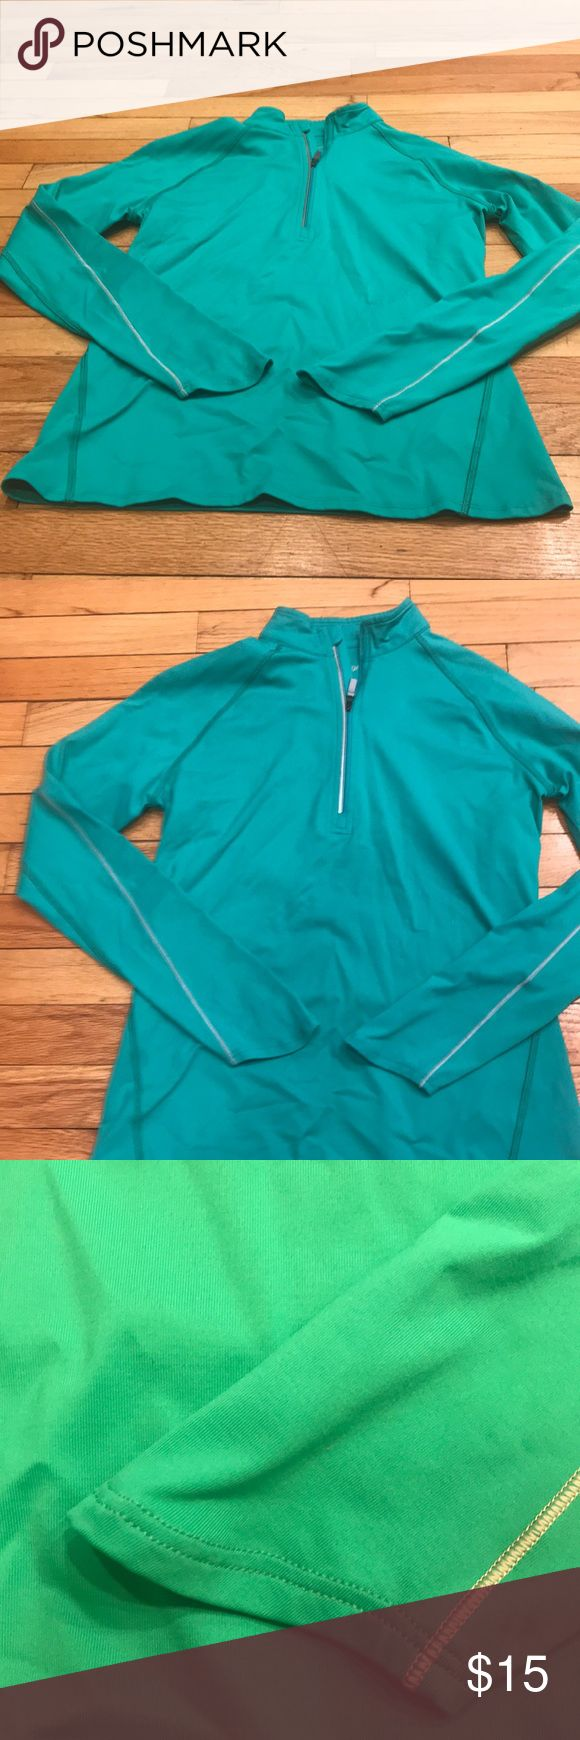 EUC CALLAWAY FIT DRY PULLOVER BU THE WAY THIS IS GREEN NOT BLUE! Great outdoor top for golfing , running , walking or riding in the car! What ever your pleasure! In amazing shape- wore it for a week when I pretended I was a golfer! Love the way the sleeves curve down on your hands ! Price is amazing - these things are expensive! Callaway Tops Sweatshirts & Hoodies